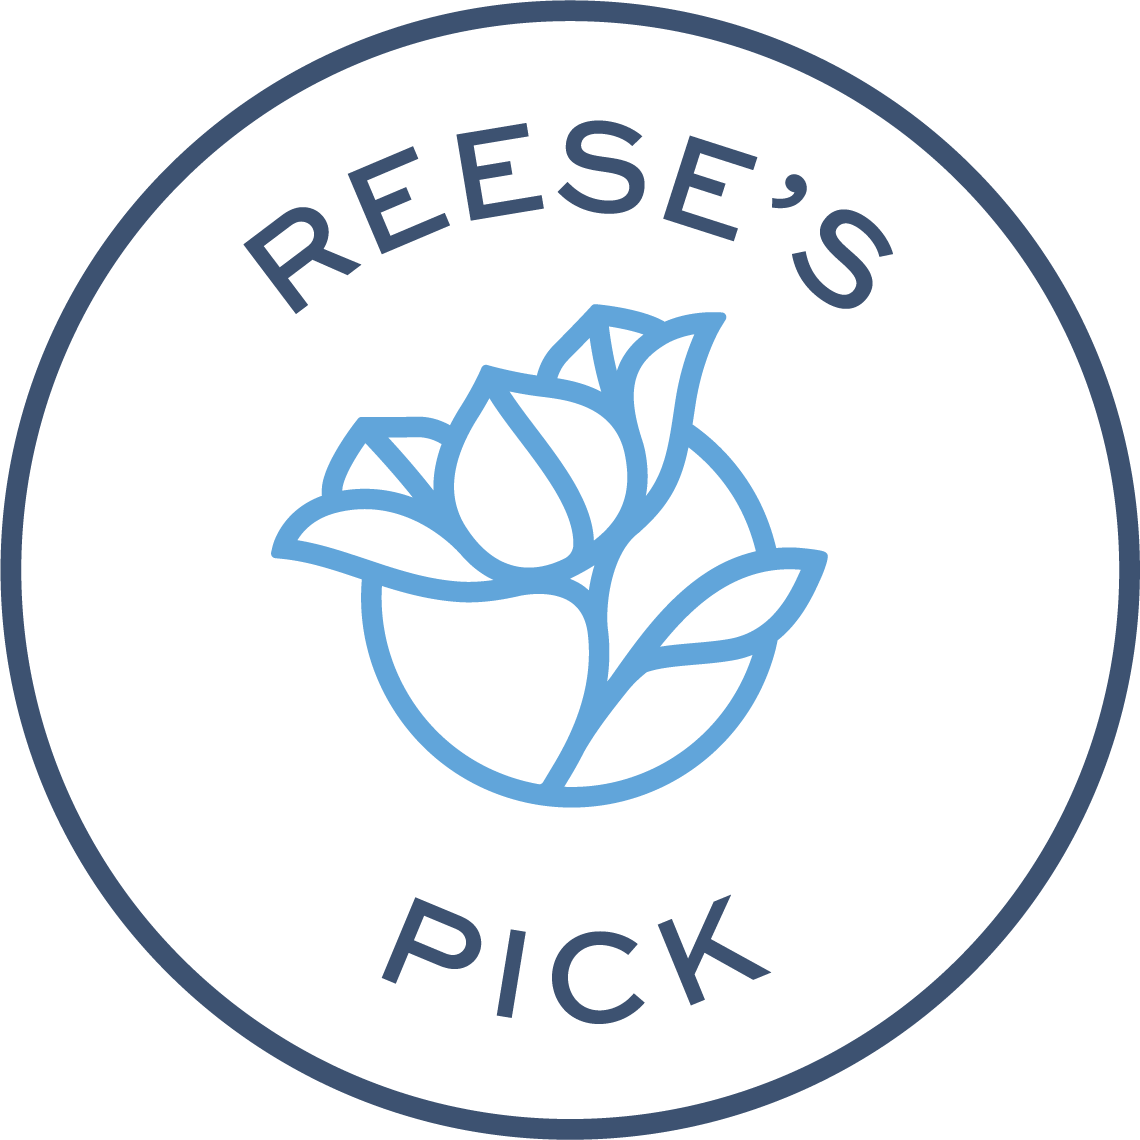 Reese's Pick